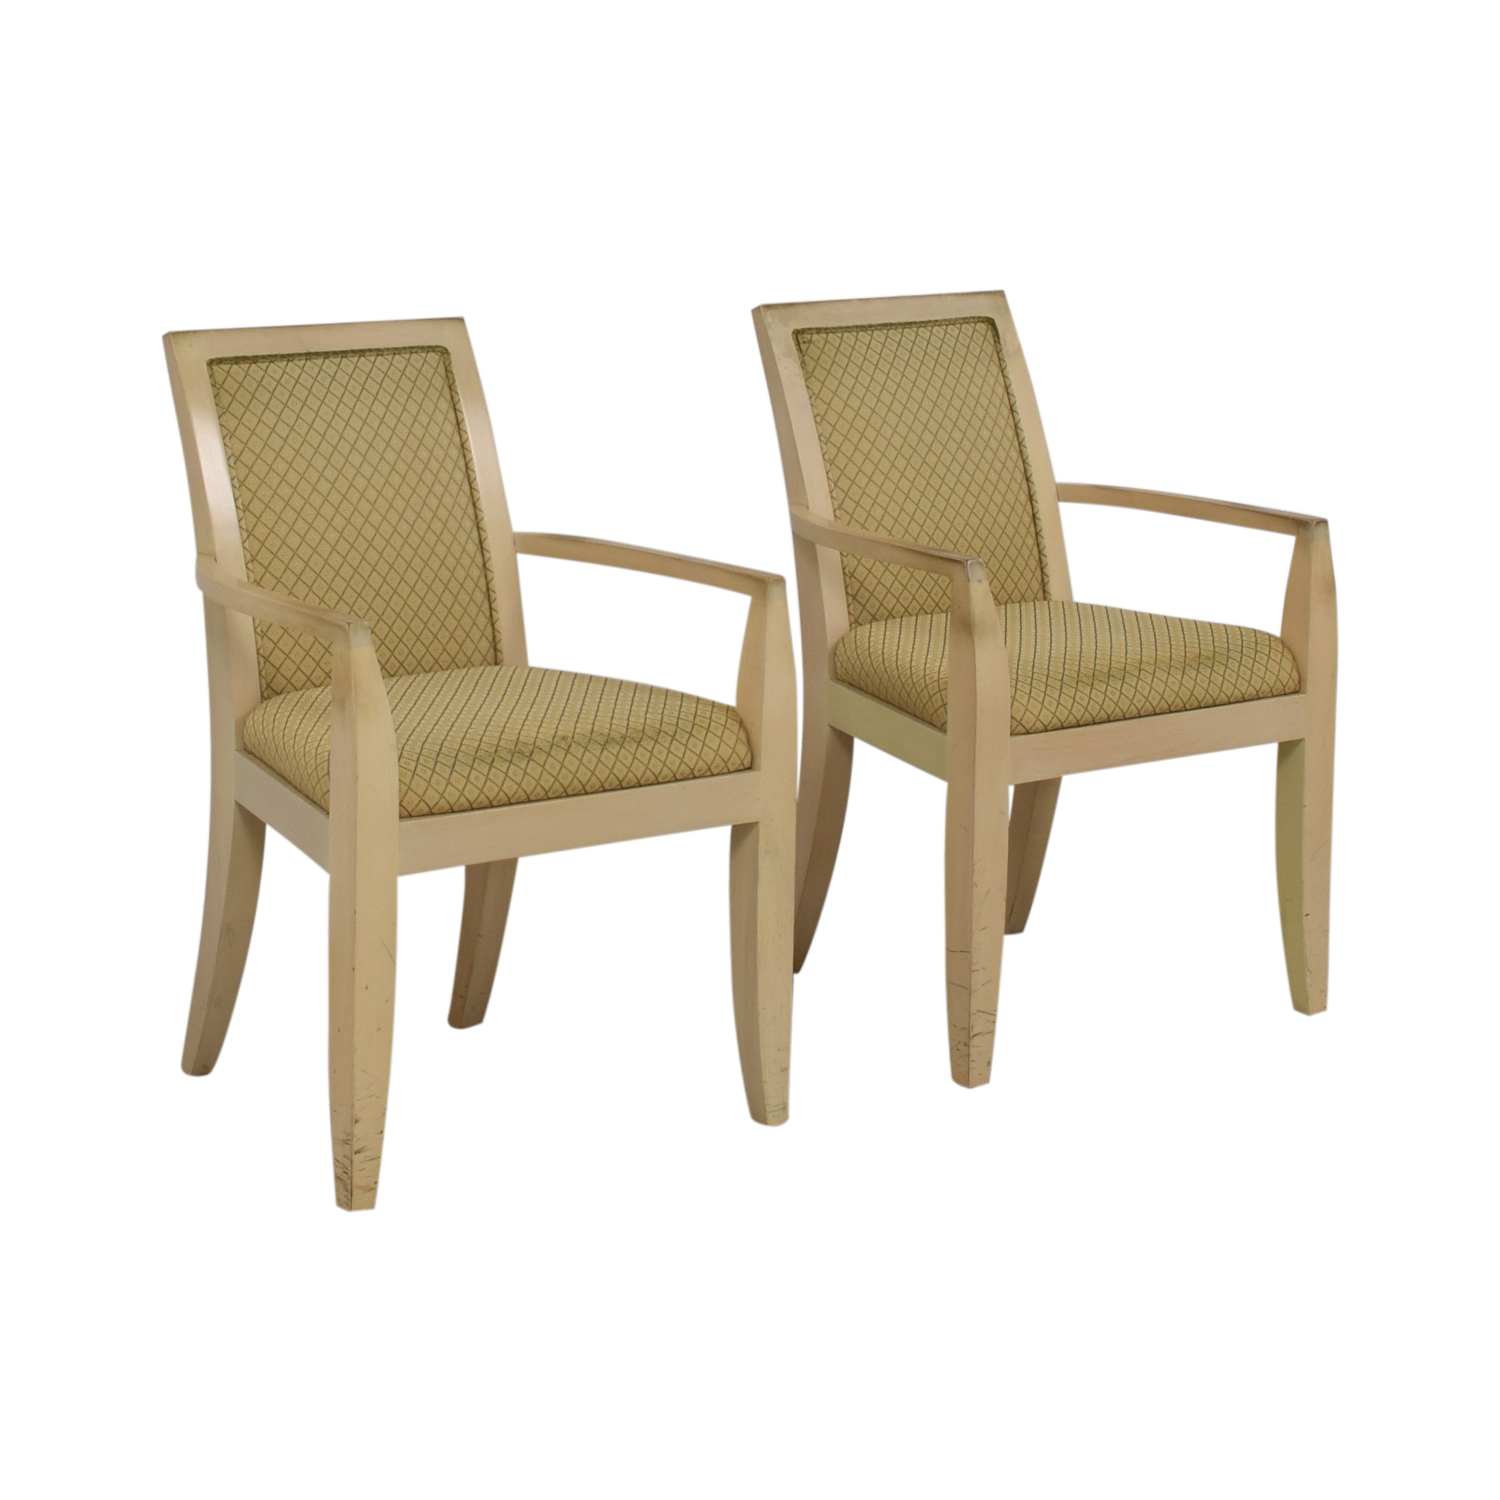 Todd Hase Todd Hase Beige Upholstered Accent Chairs Home Office Chairs